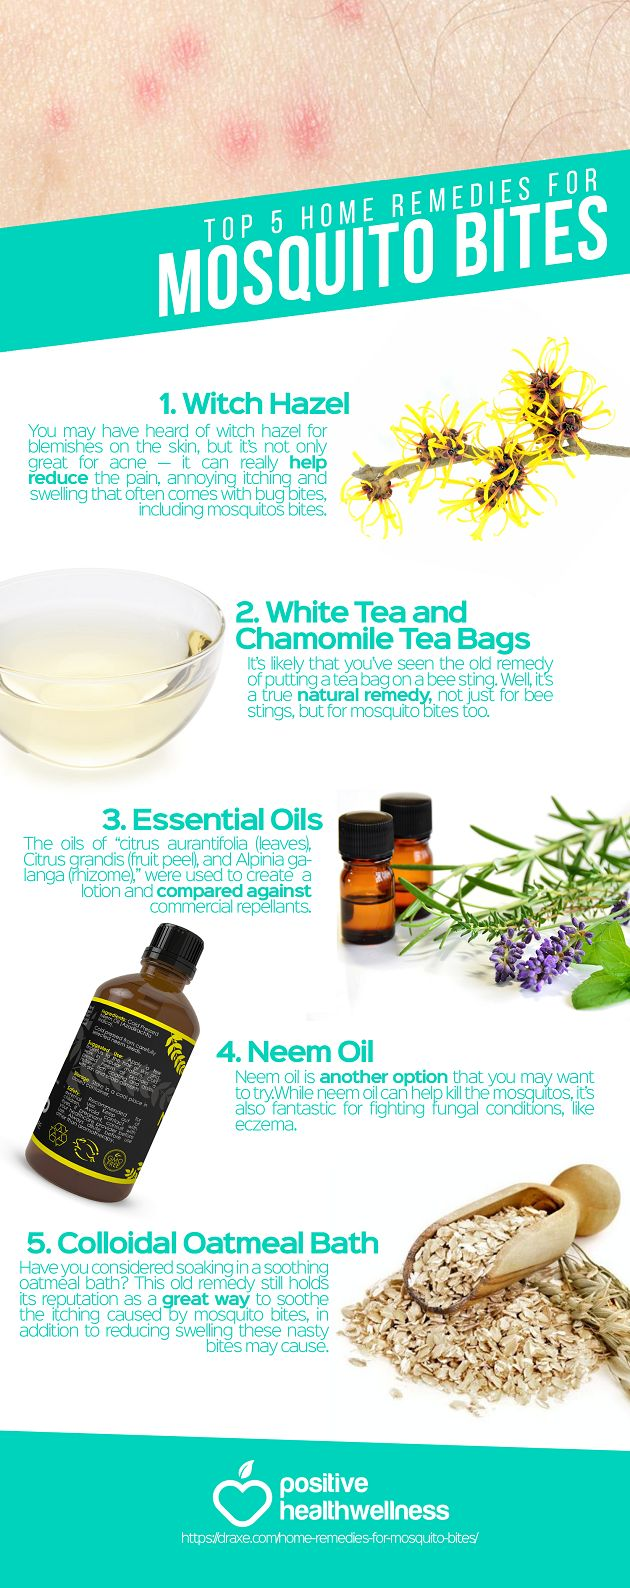 healthyhomosapien: Top 5 Home Remedies For Mosquito Bites